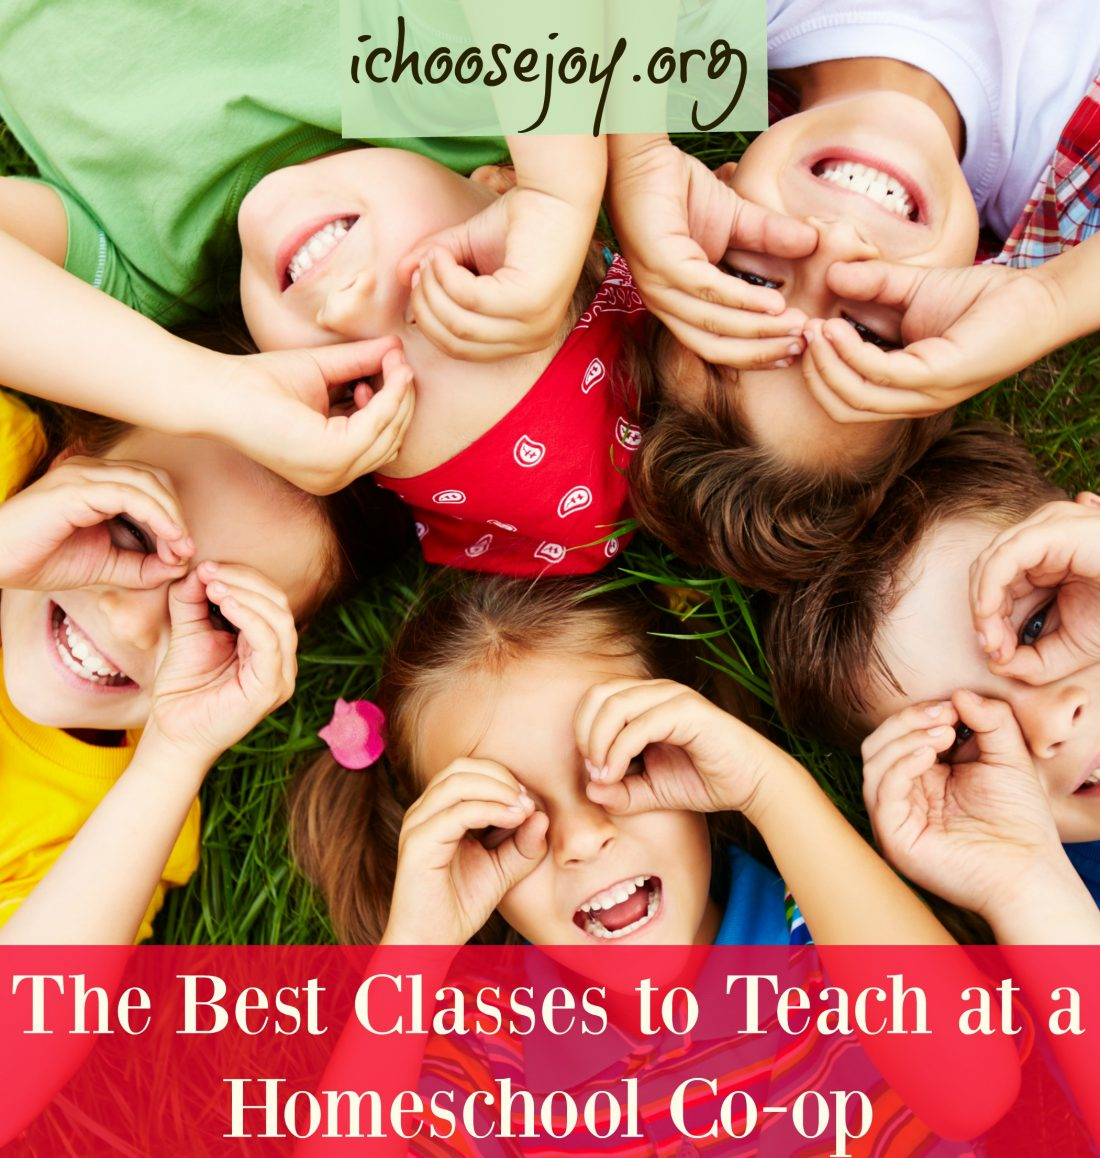 The Best Classes to Teach at a Homeschool Co-op